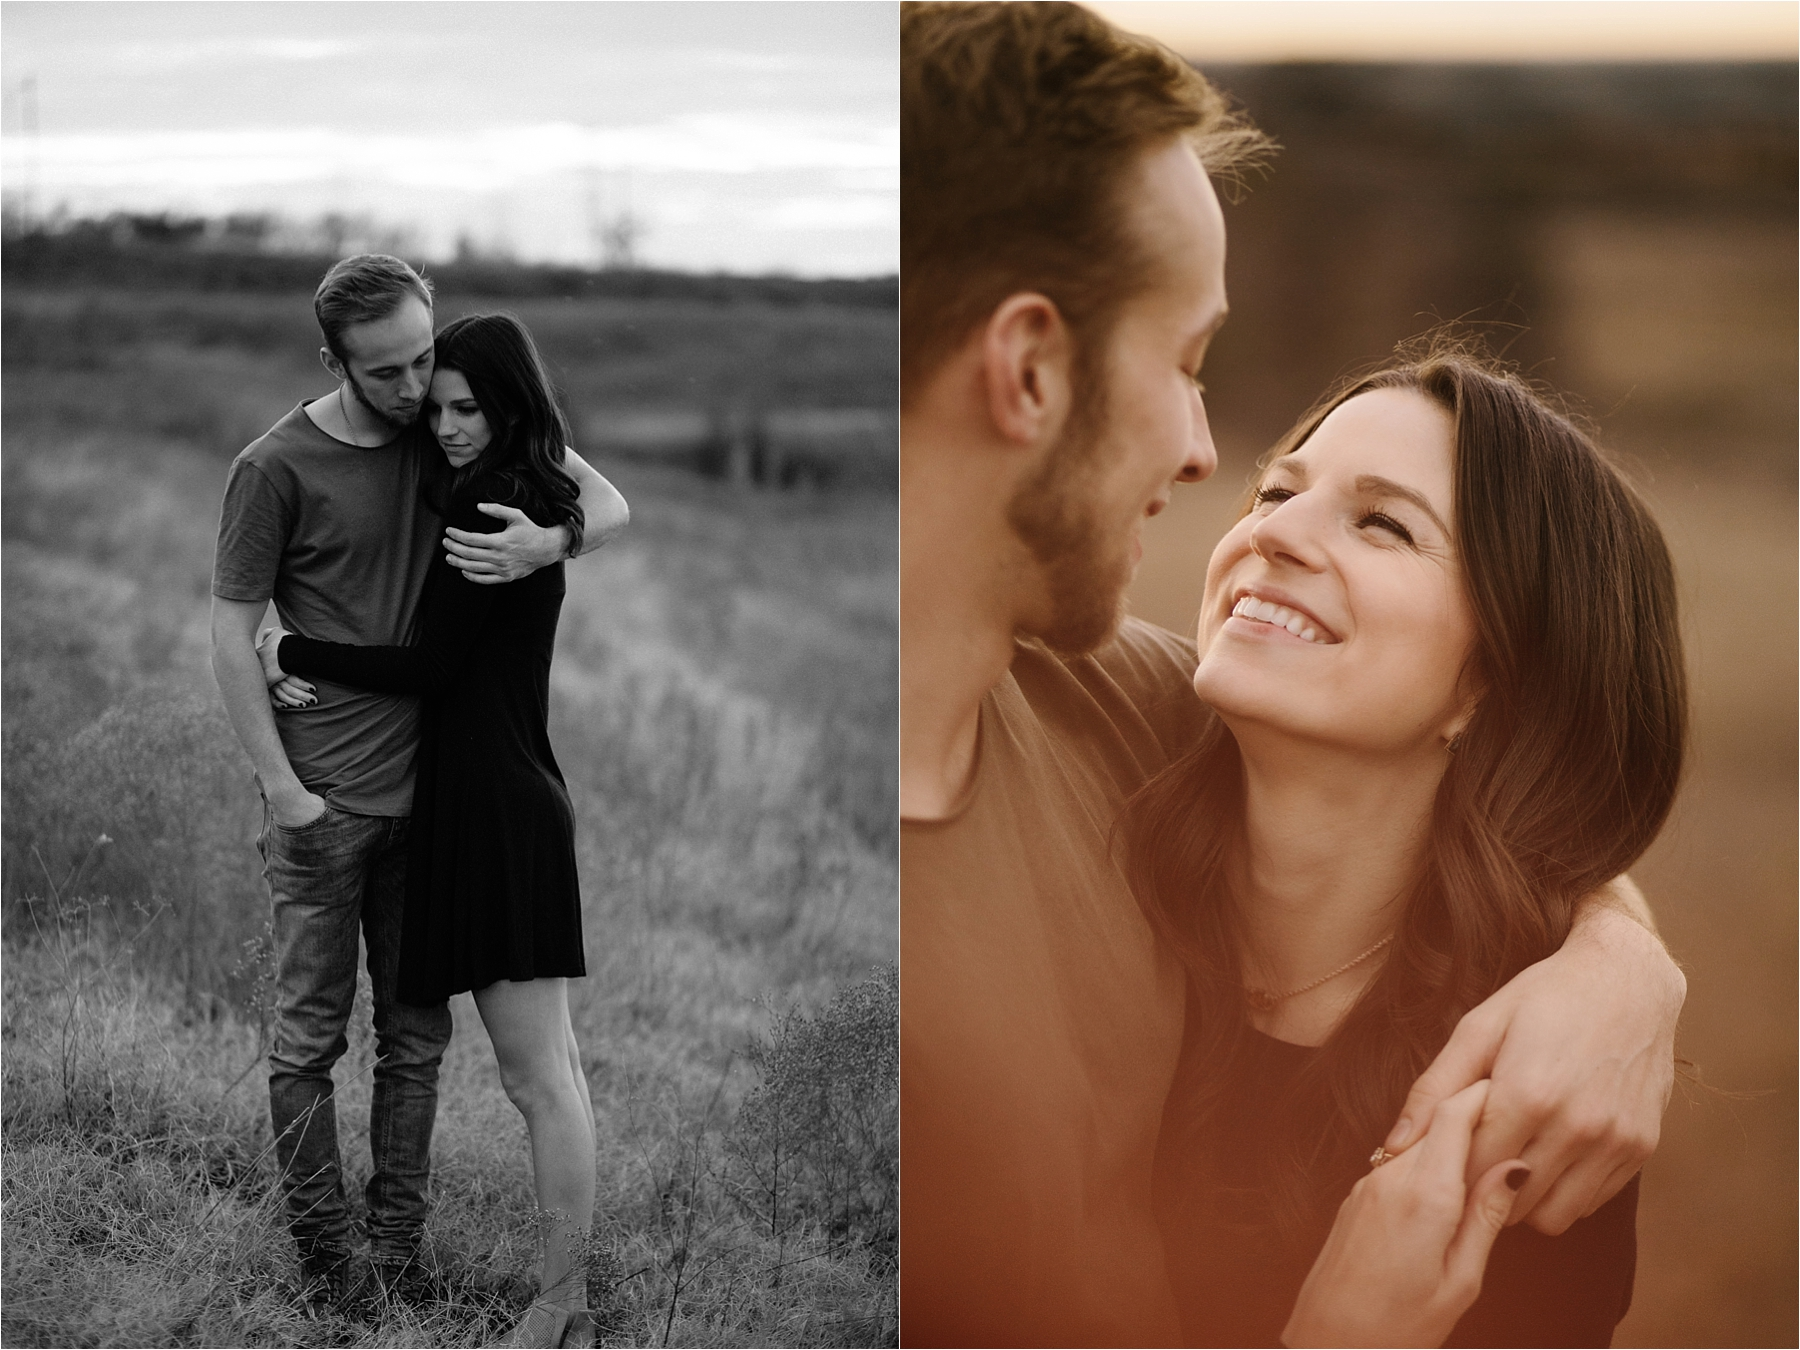 Trey + Phoebe __ a playful, intimate engagement session with dark_neutral outfit inspiration by North Texas Wedding Photographer Rachel Meagan Photography __ 21